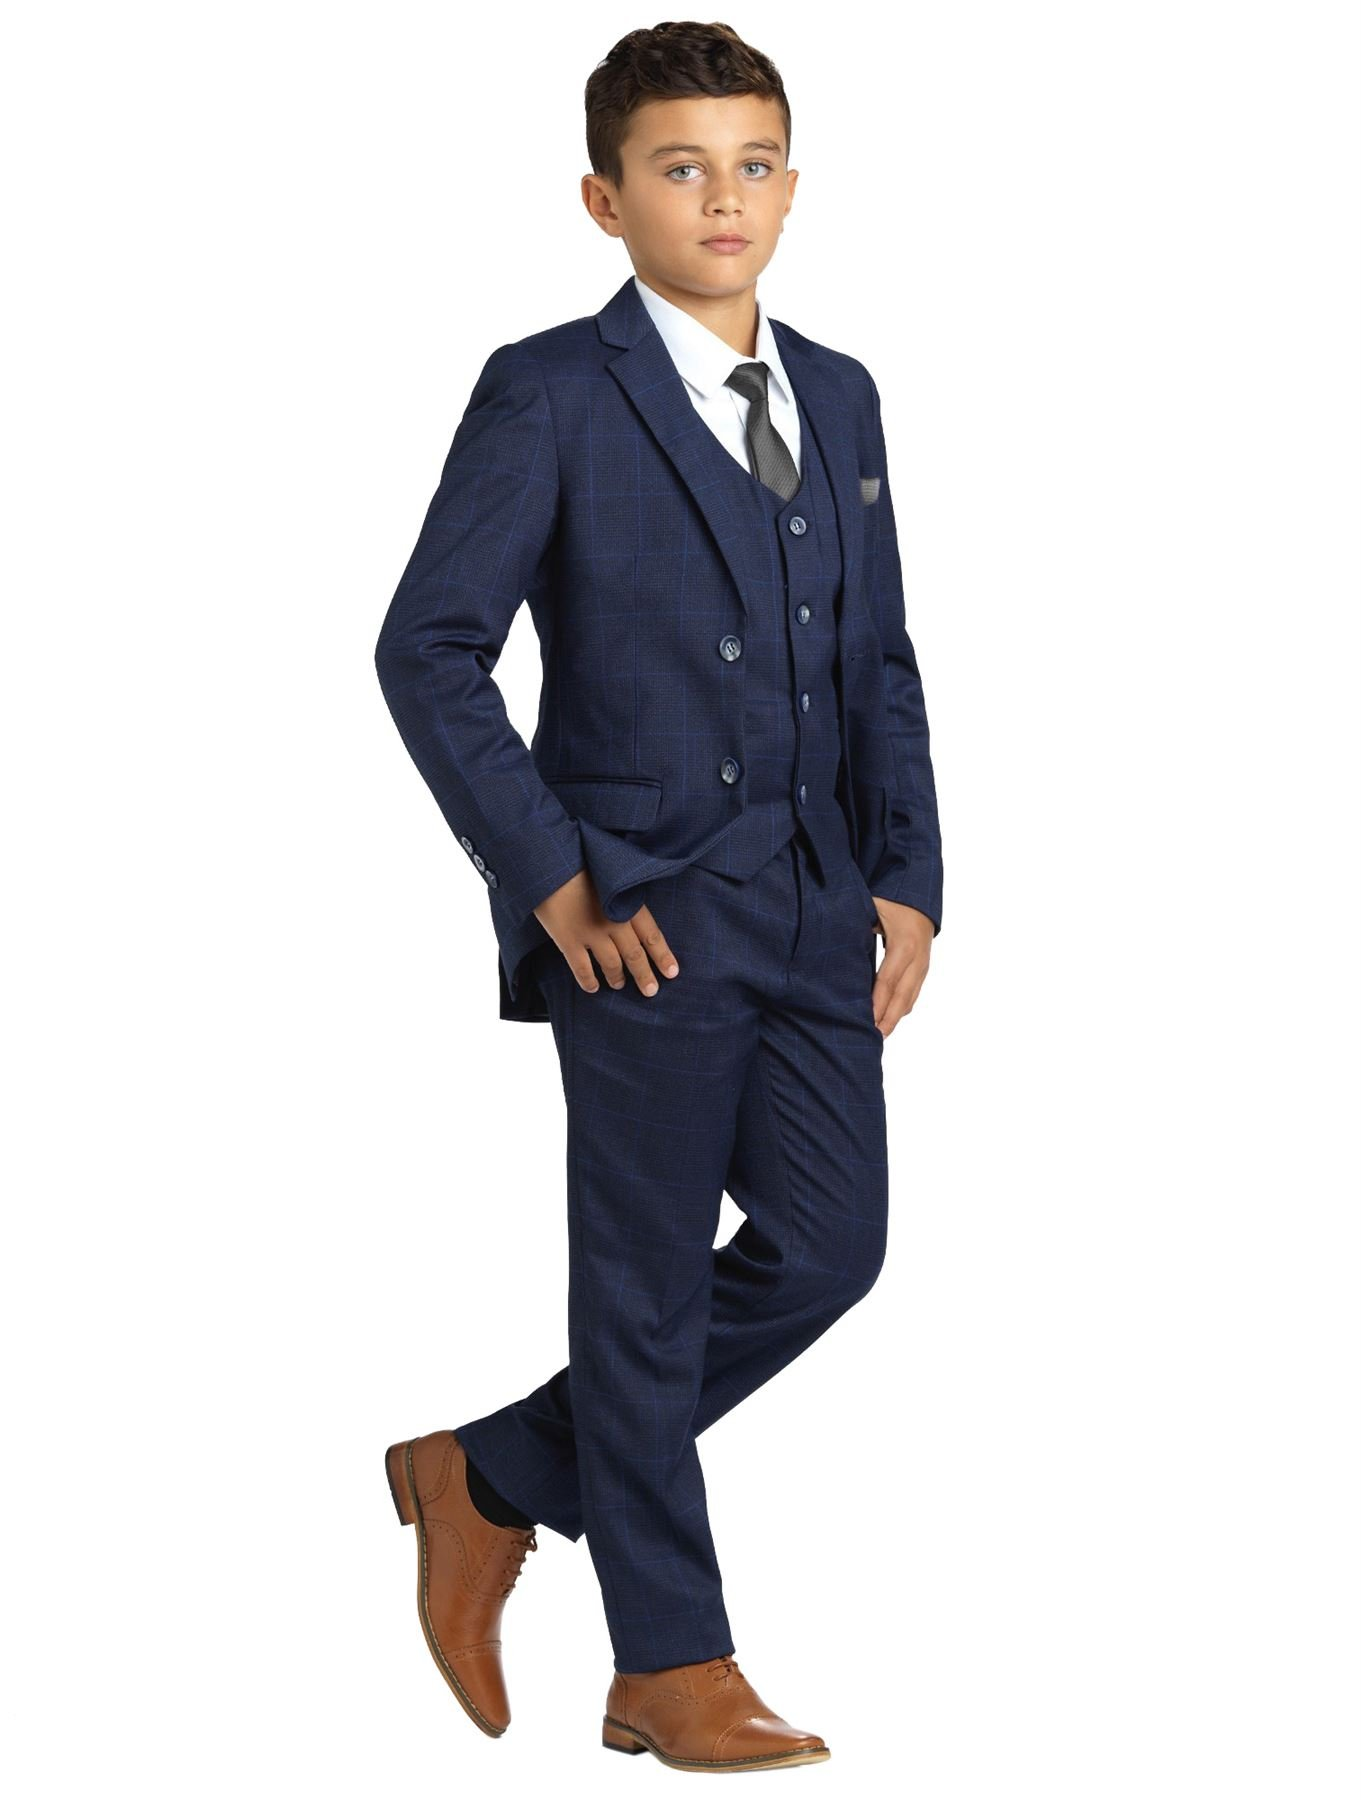 Paisley of London, Henry Navy Check Occasion Wear, Boys Navy Wedding Slim Fit Suit with Shirt and Vest, 20